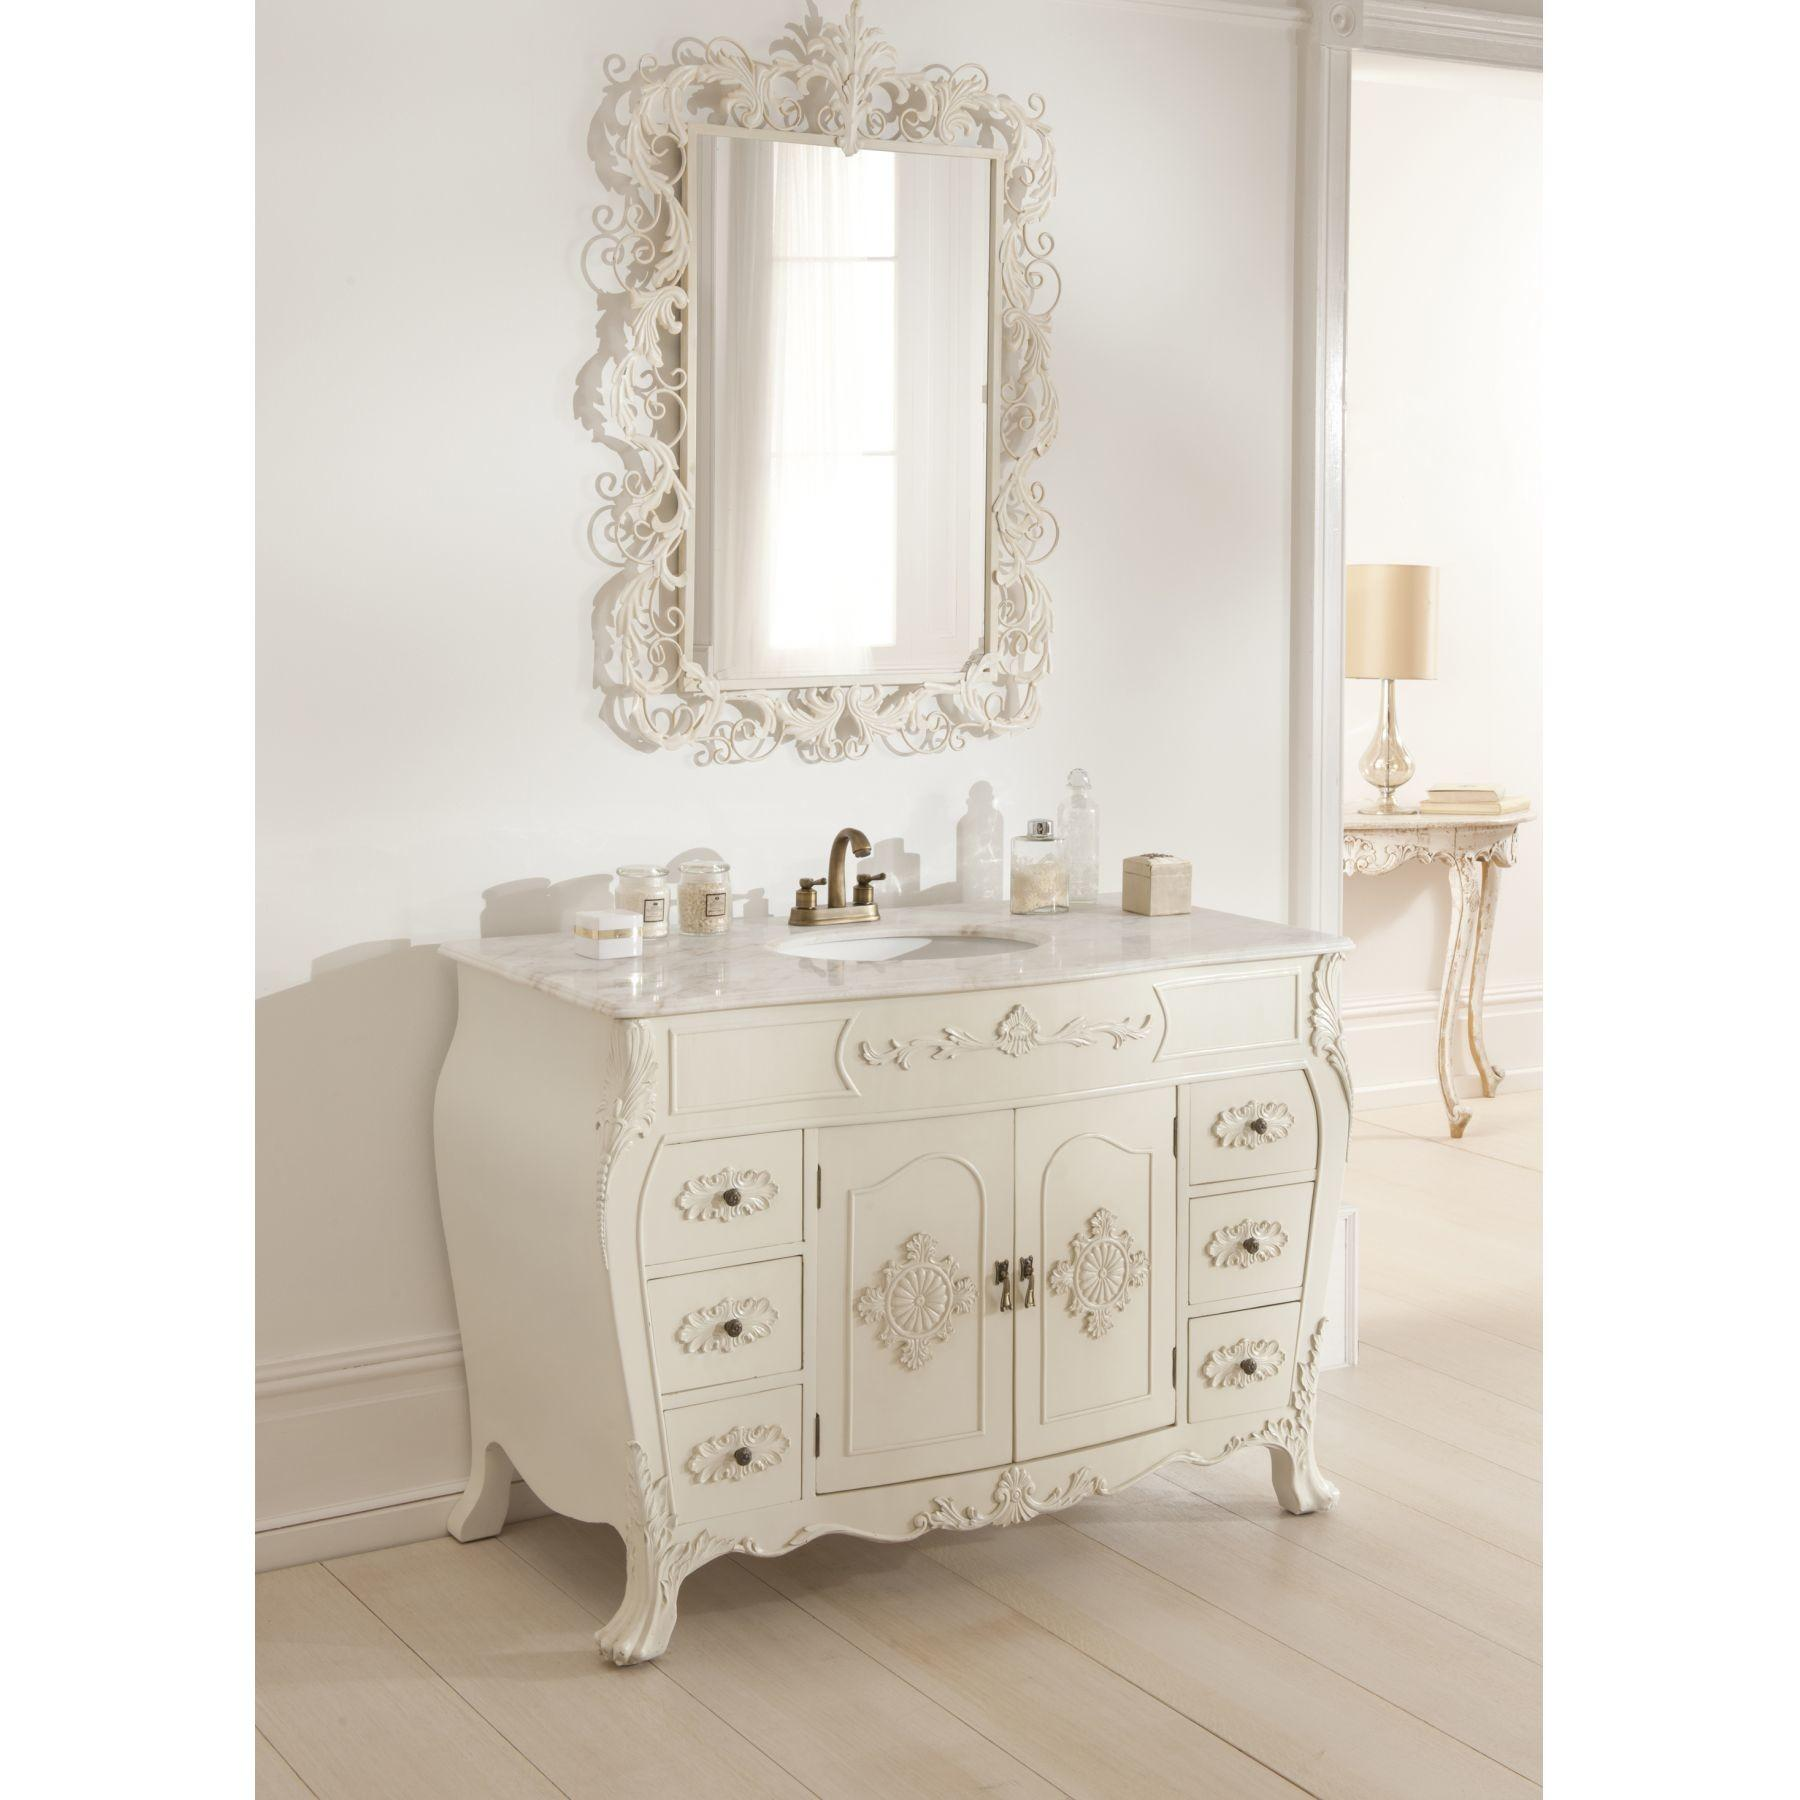 Furniture White Wooden Shabby Bathroom Vanity Black